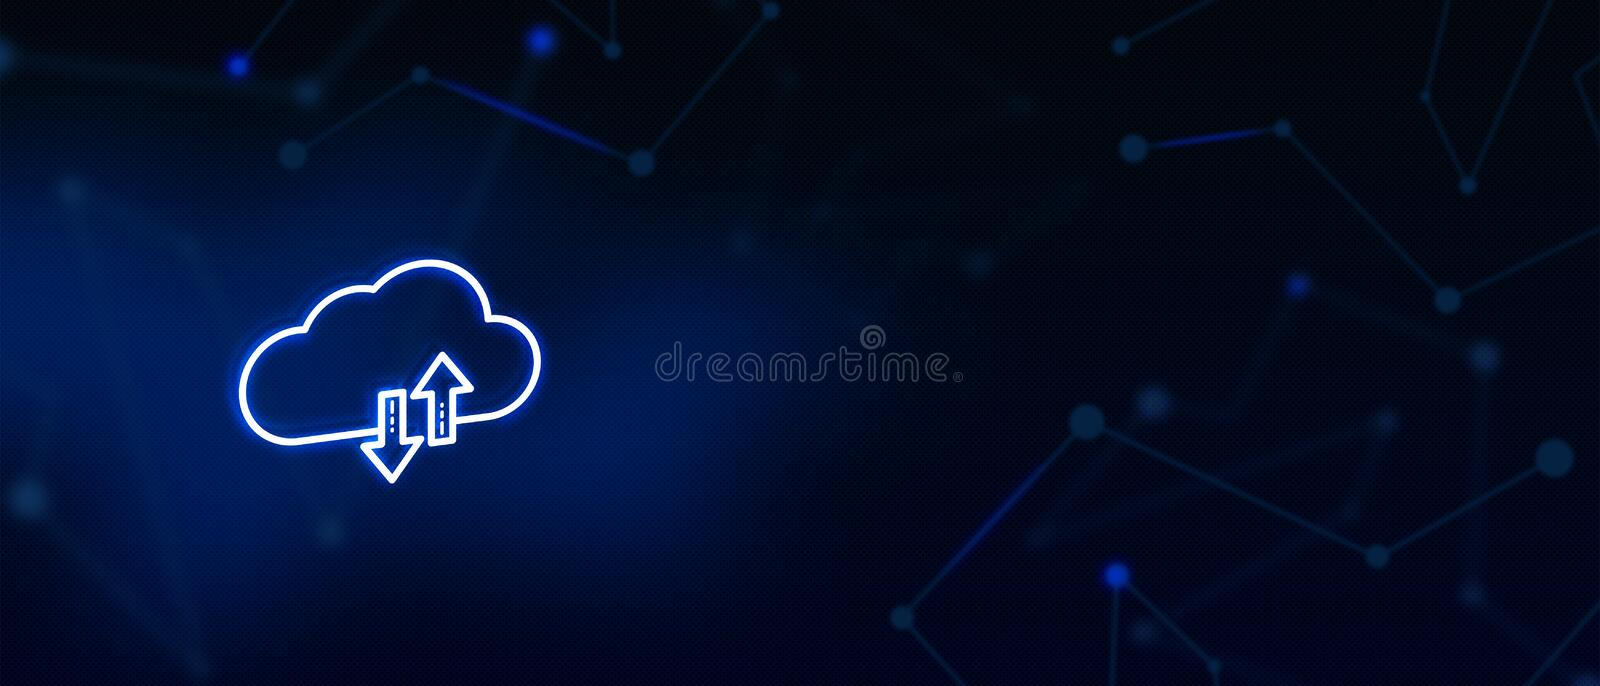 Cloud server, Cloud sync, Cloud services, Digital technology, Contact us, Landing page background cover page. Cloud sync, Cloud services, Digital technology royalty free illustration